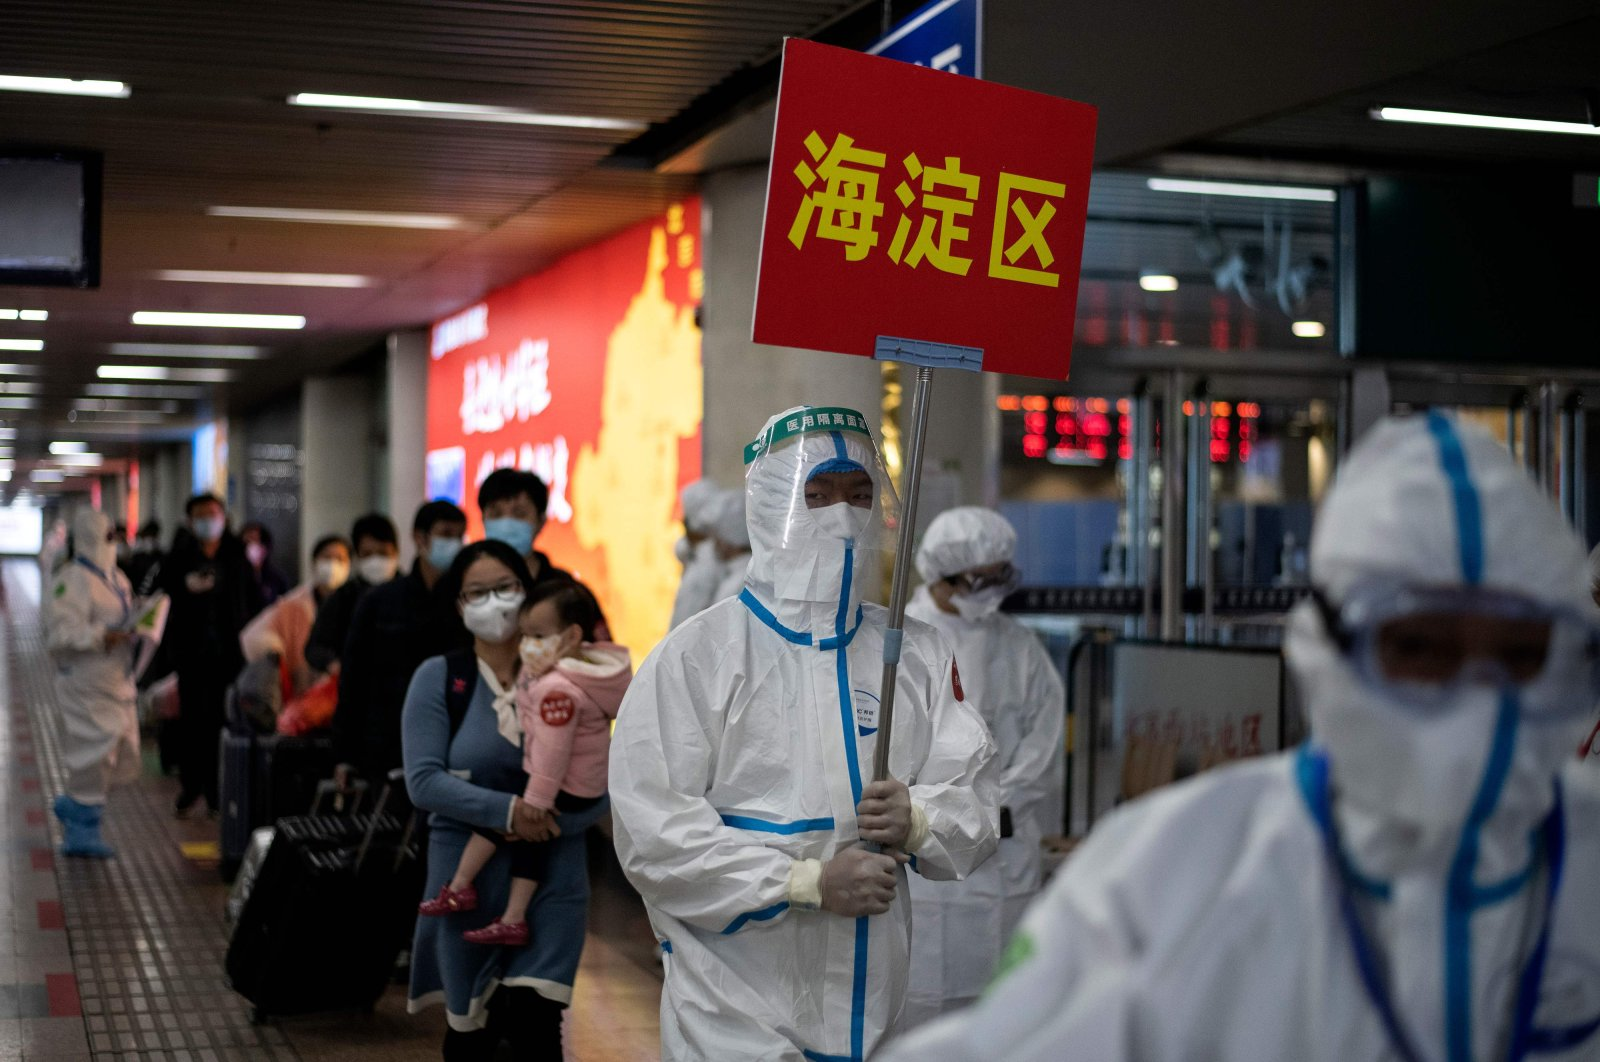 Transport personnel wearing hazmat suits guide travelers arriving from Wuhan to buses, which will take them to their quarantine locations, at Beijing West Railway Station, April 15, 2020. (AFP Photo)